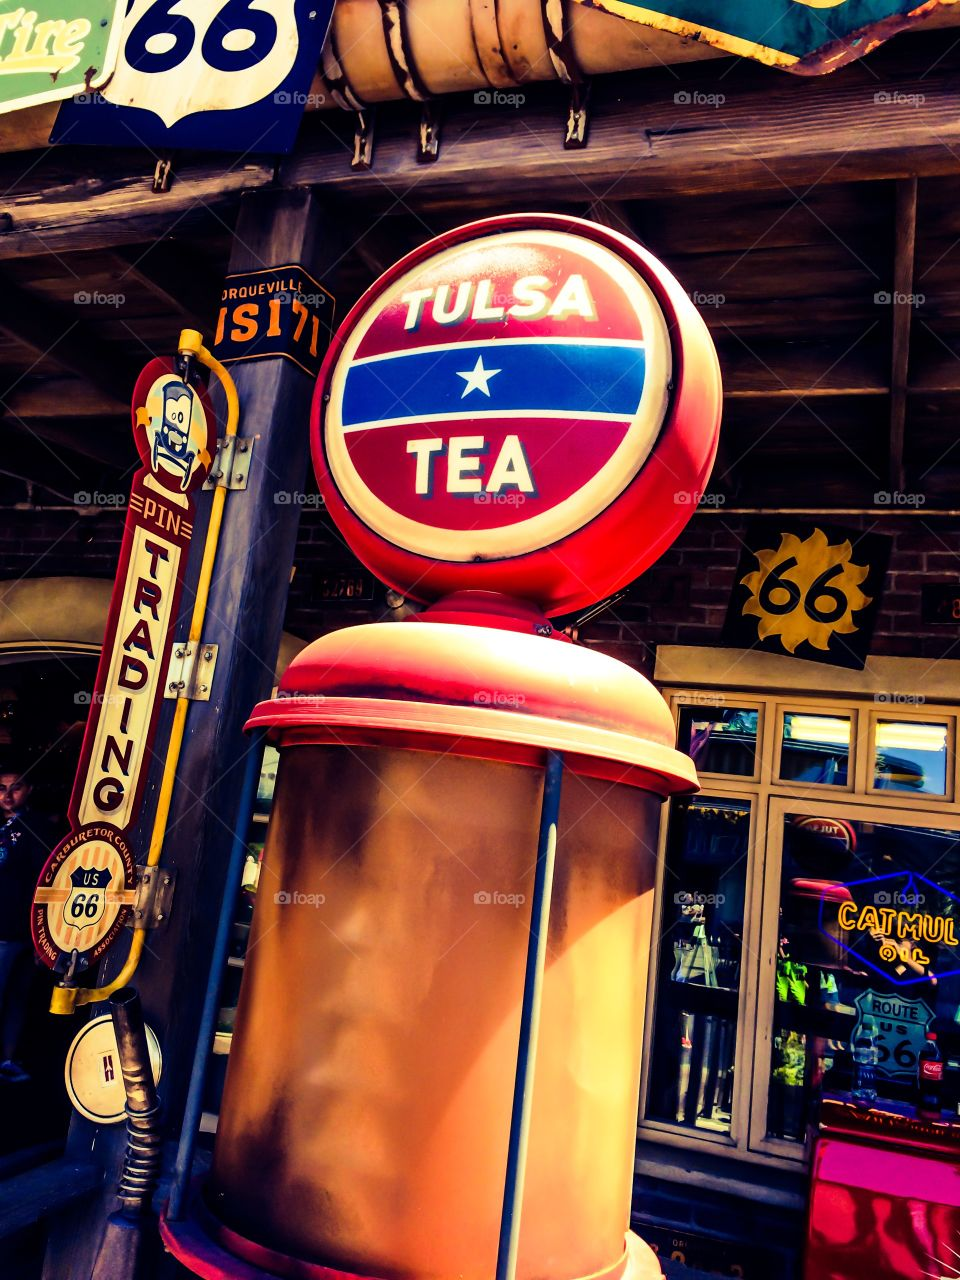 Texas Tea brand of gasoline sold exclusively in radiator springs at Disney's California adventure in Anaheim California.